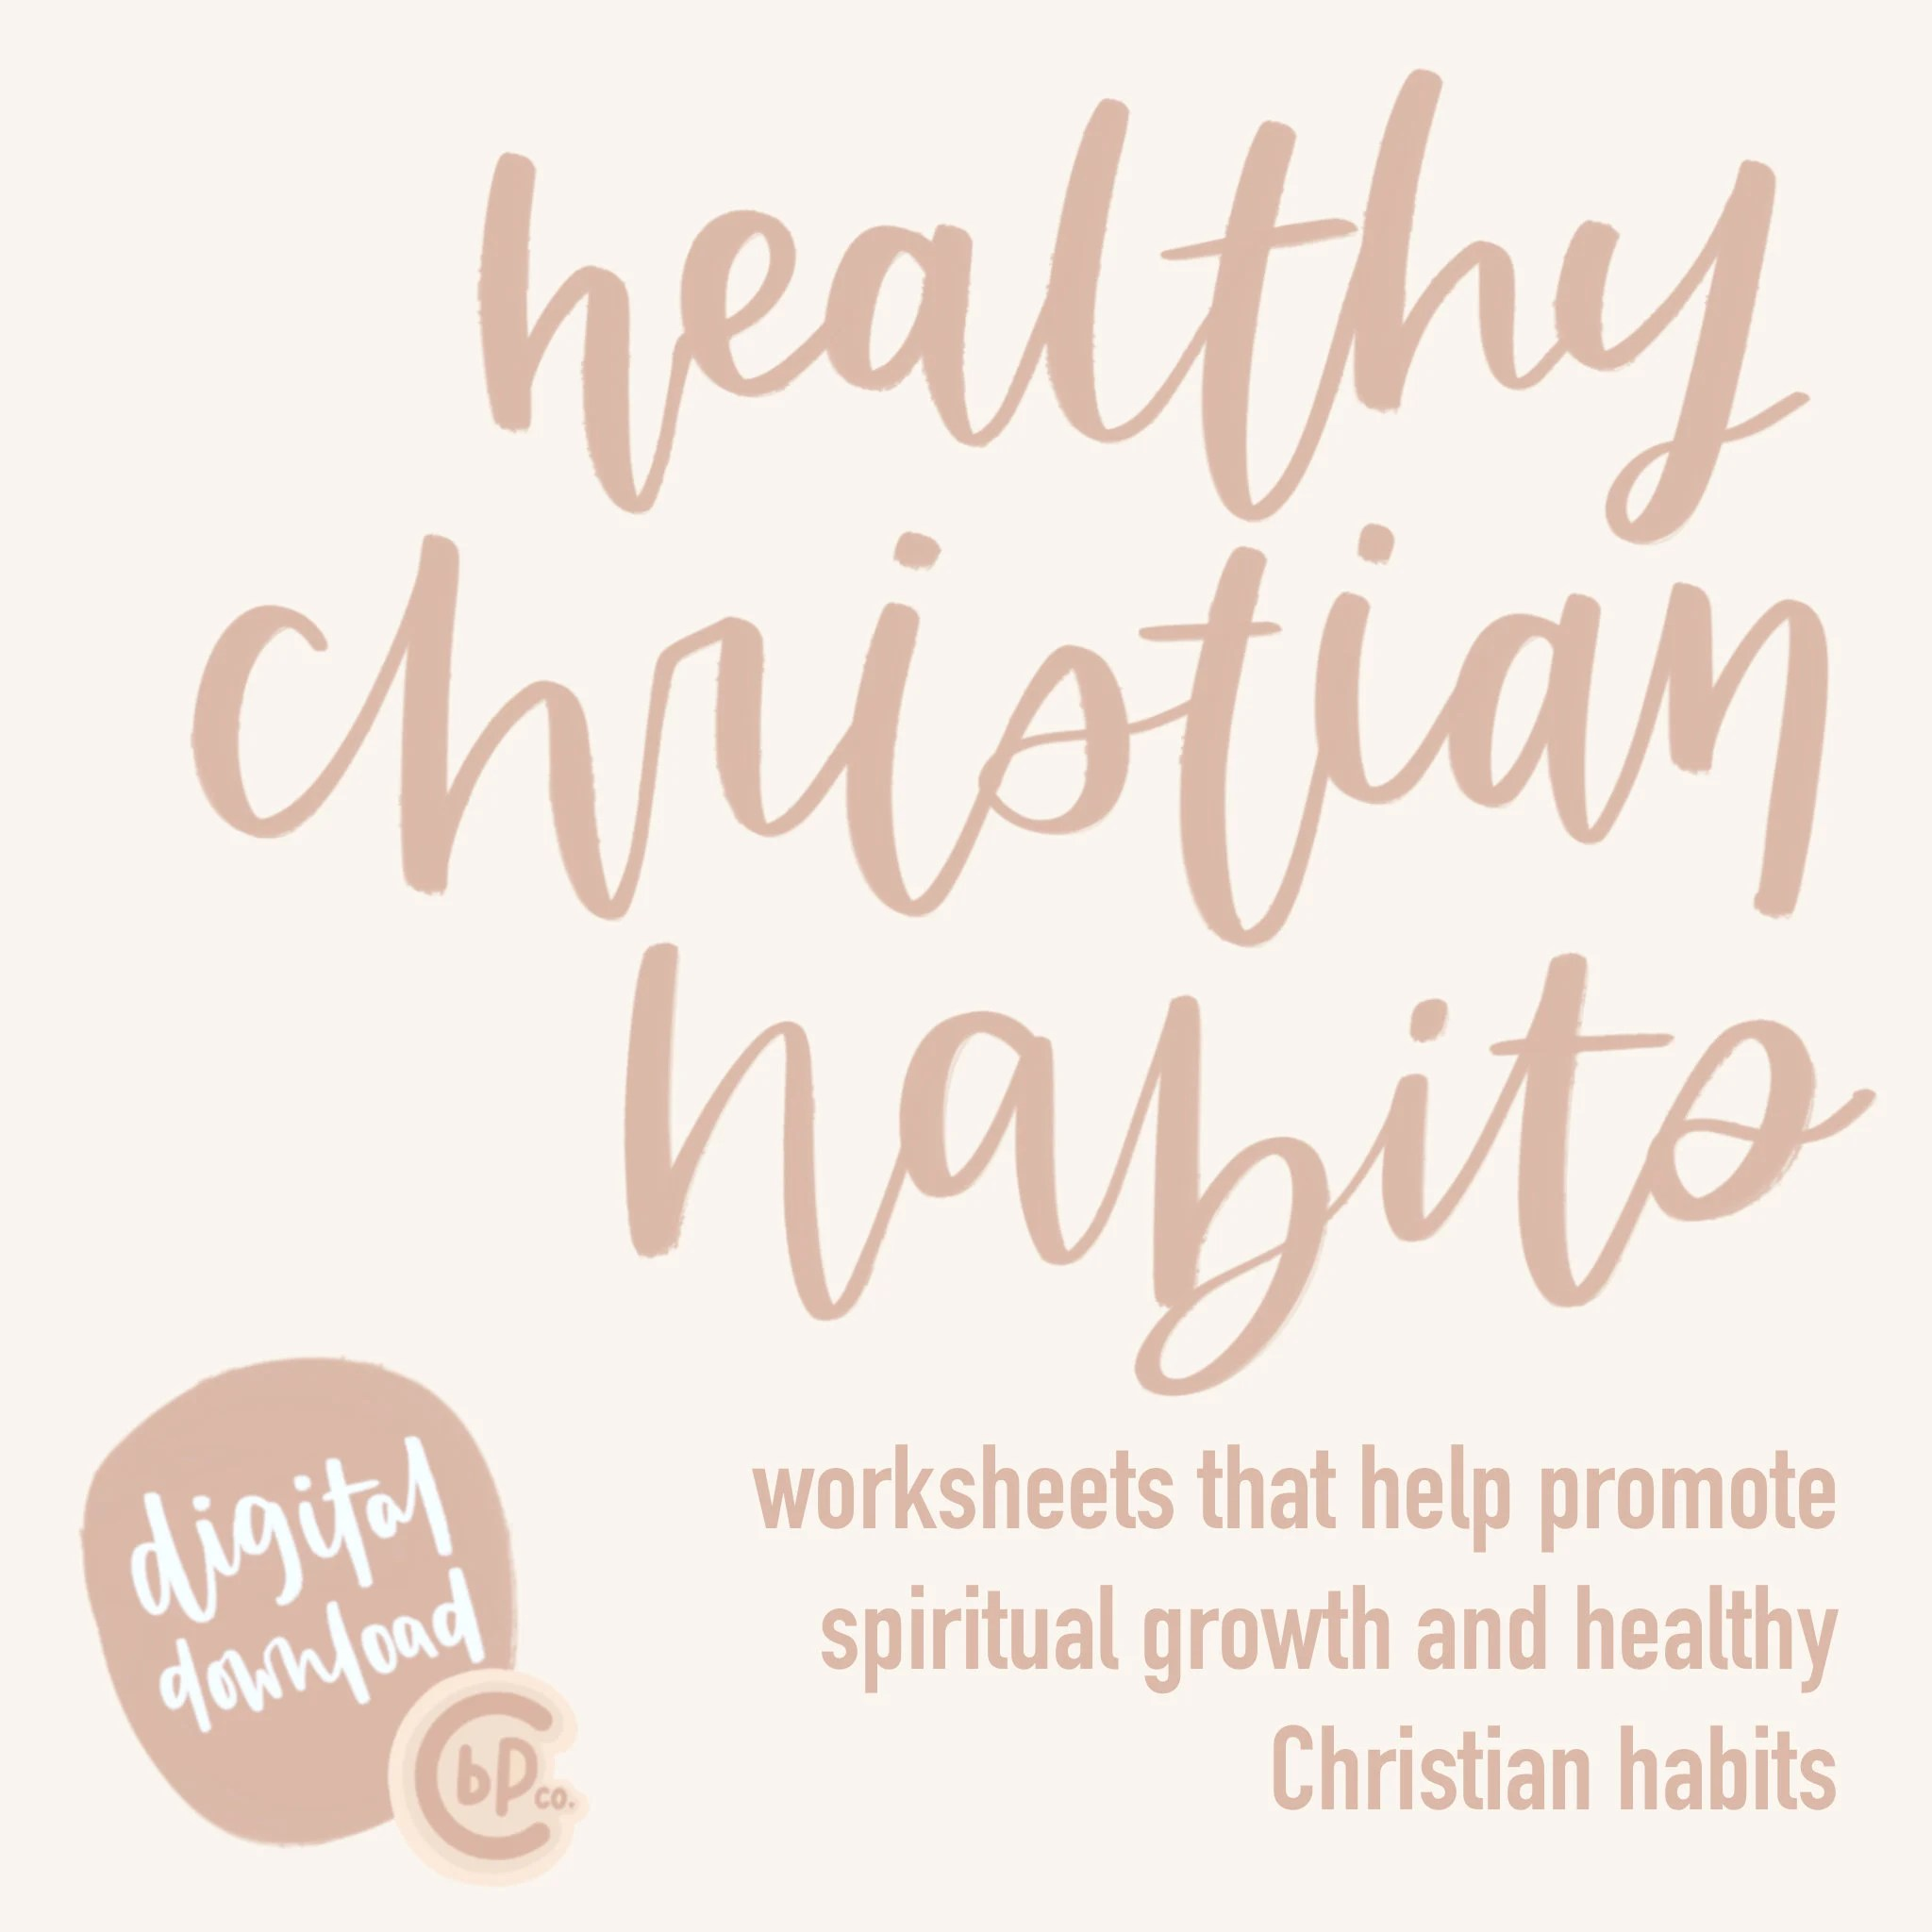 Healthy Christian Habits Christian Habits Spiritual Growth